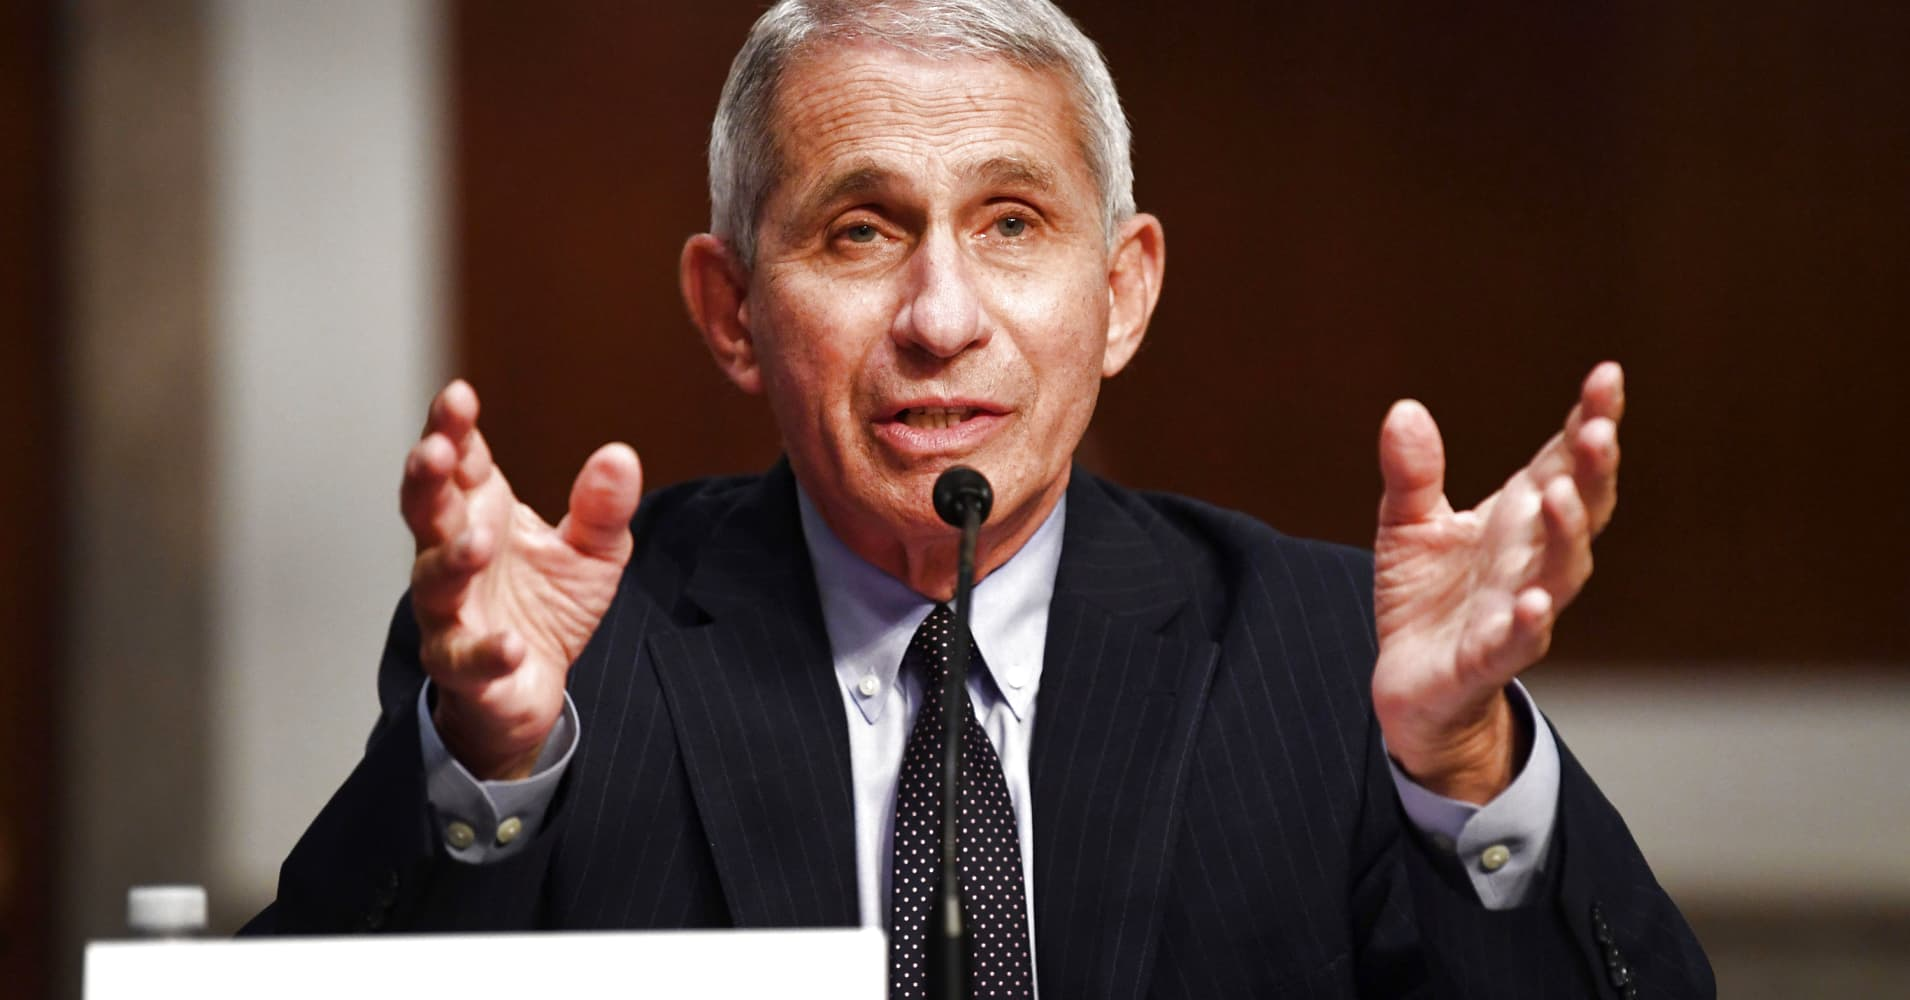 Q&A with Dr. Fauci and NIH Director Dr. Collins on coronavirus pandemic